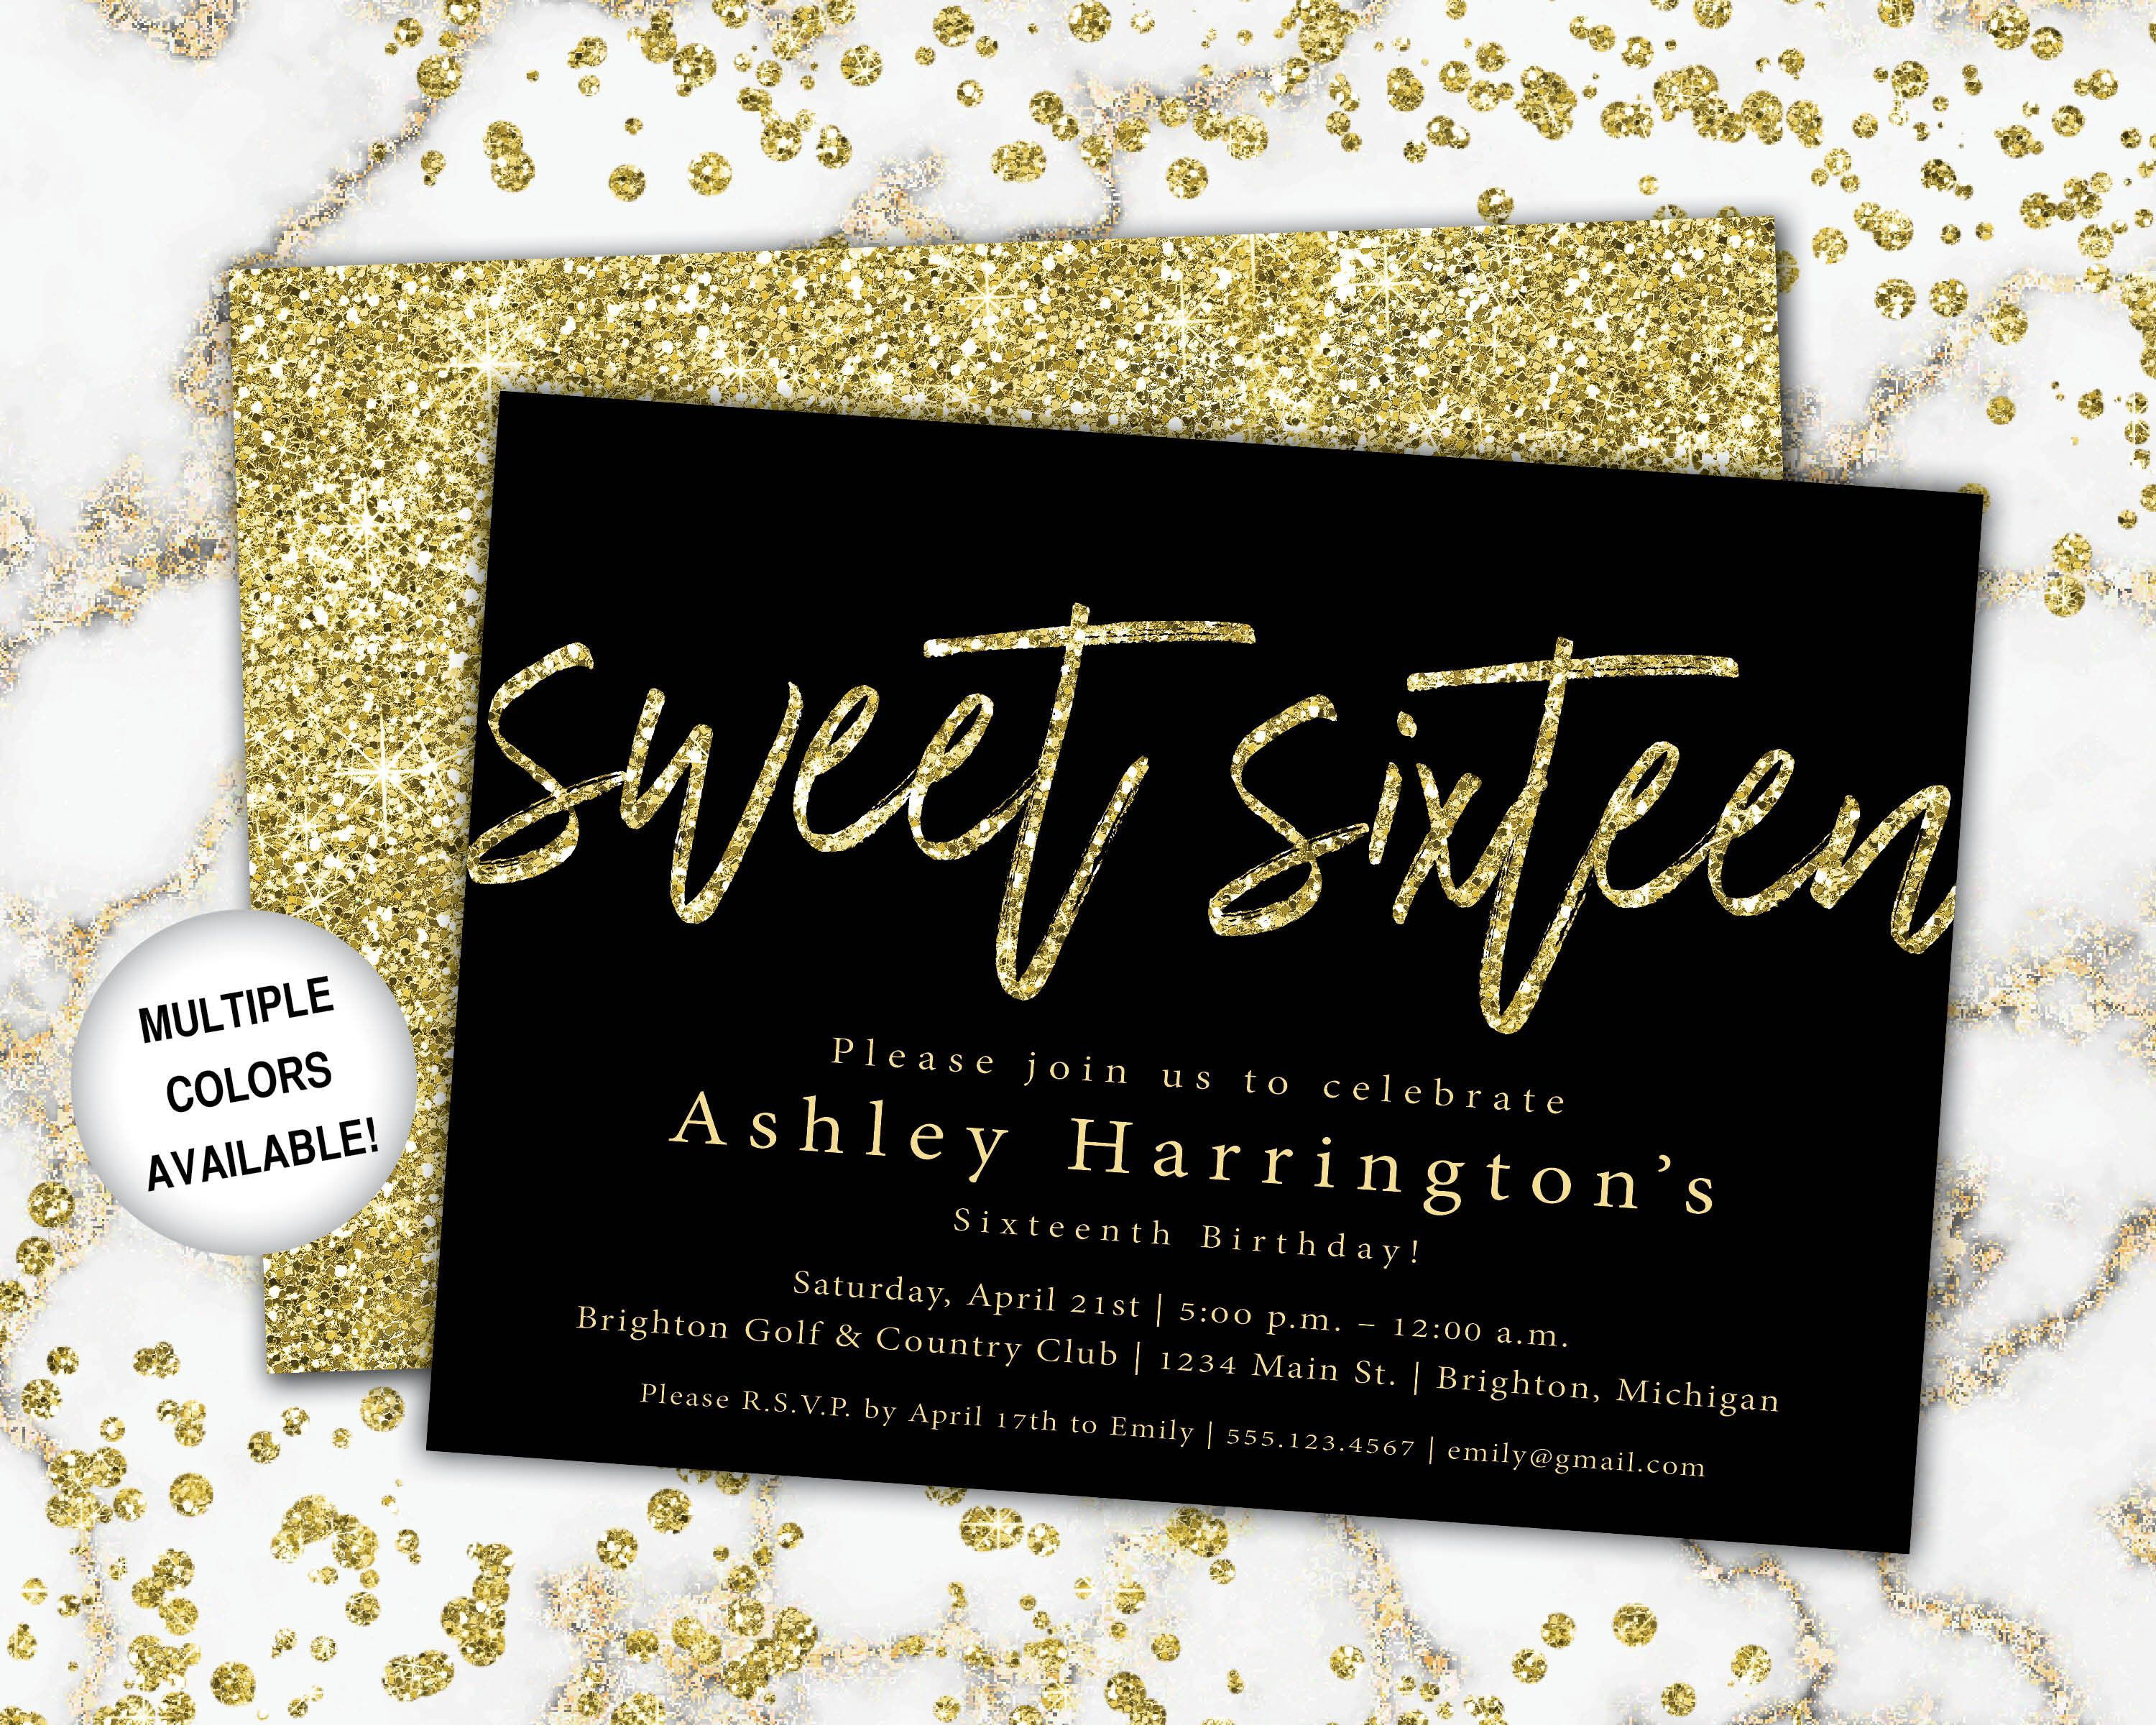 004 Amazing Sweet Sixteen Invitation Template Image  Templates Blue 16 Party FreeFull